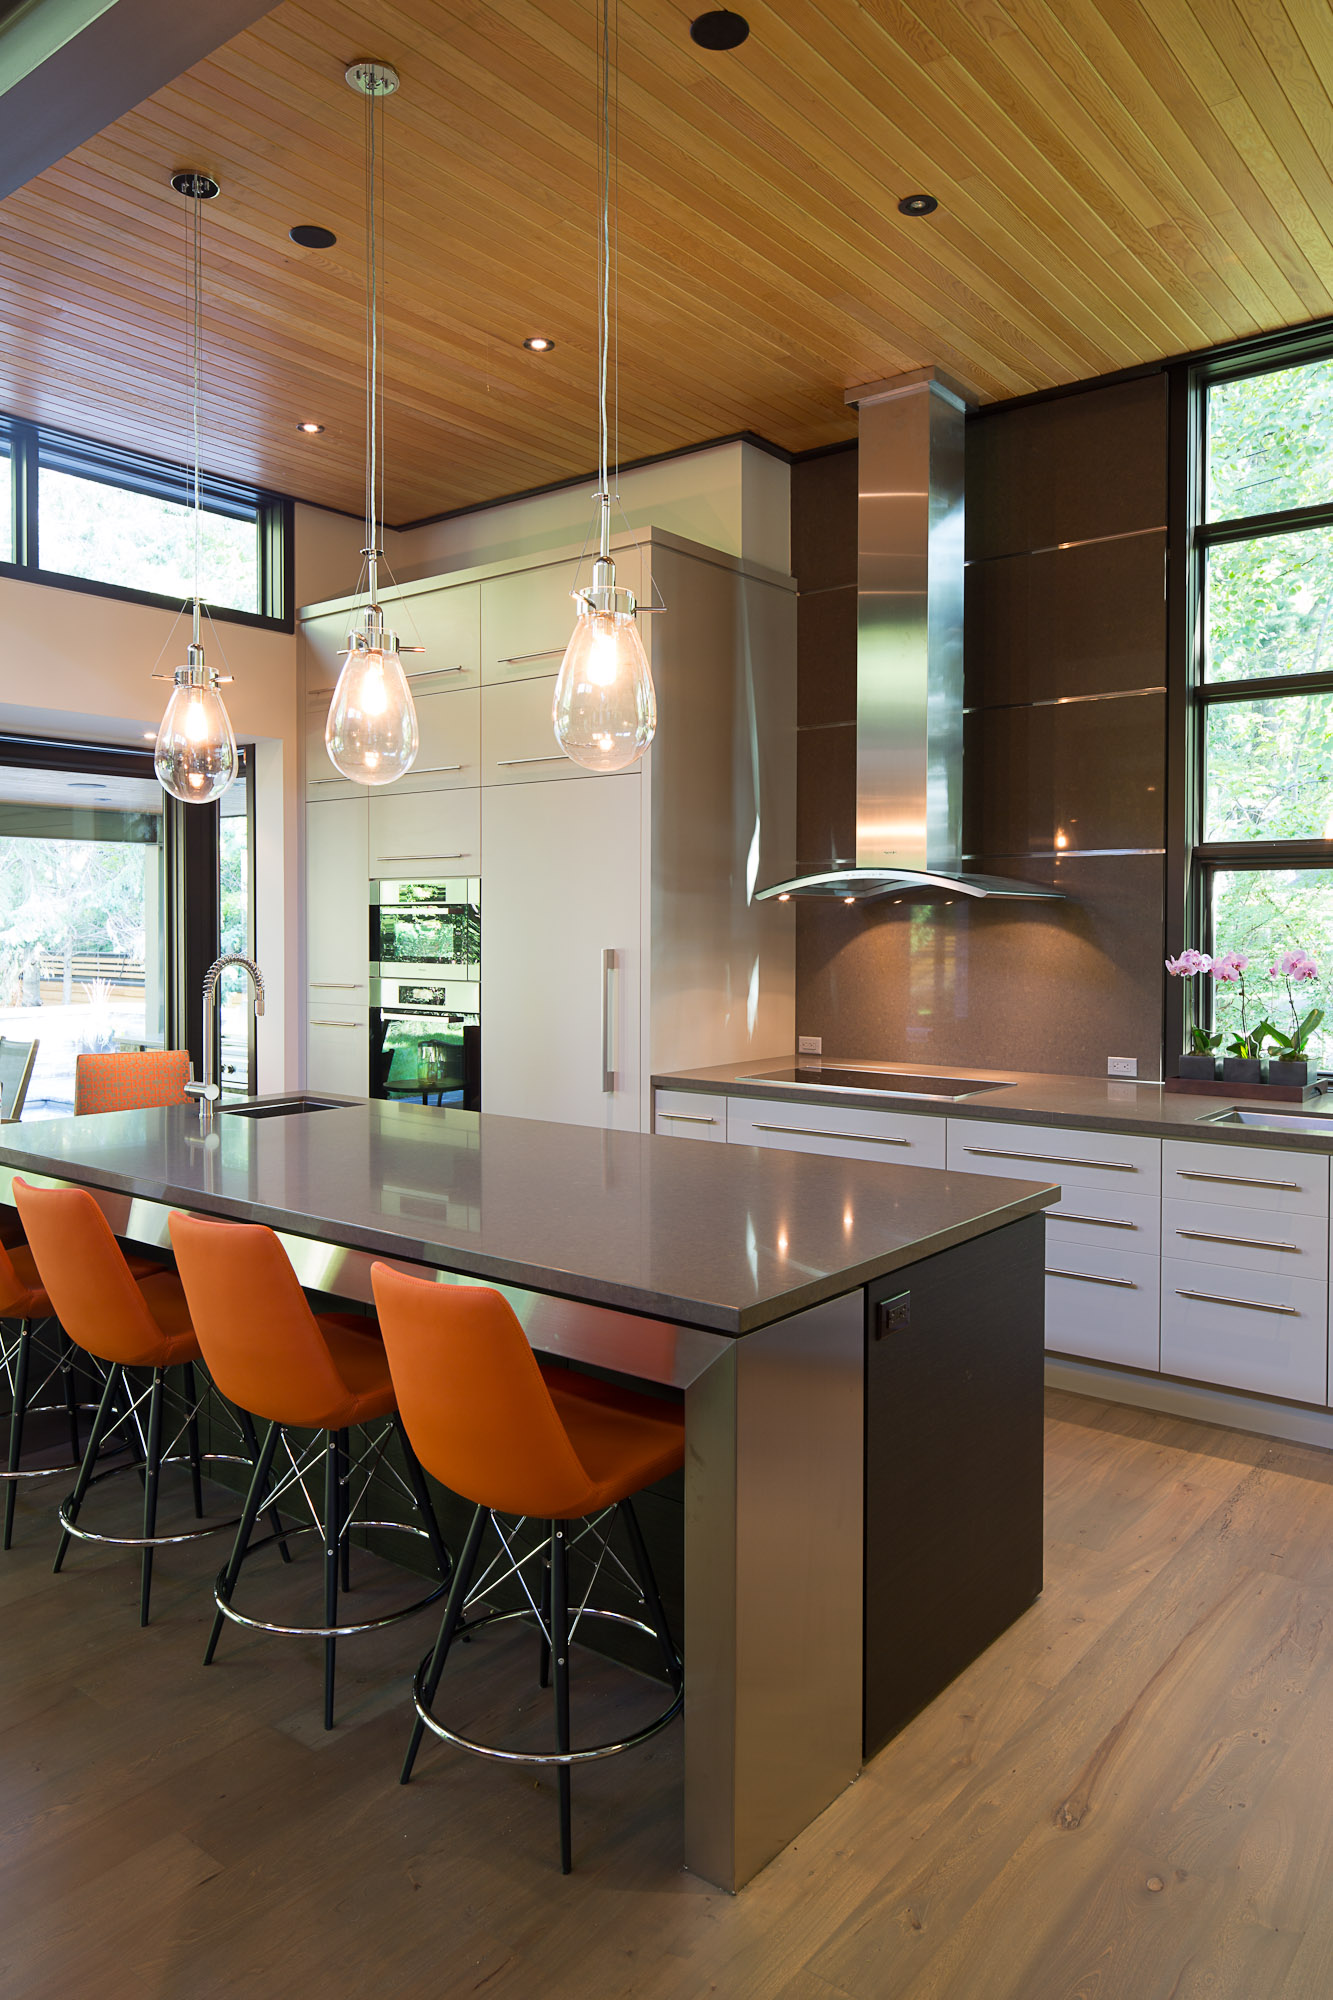 David Small Designs – Quartz Kitchen Countertop